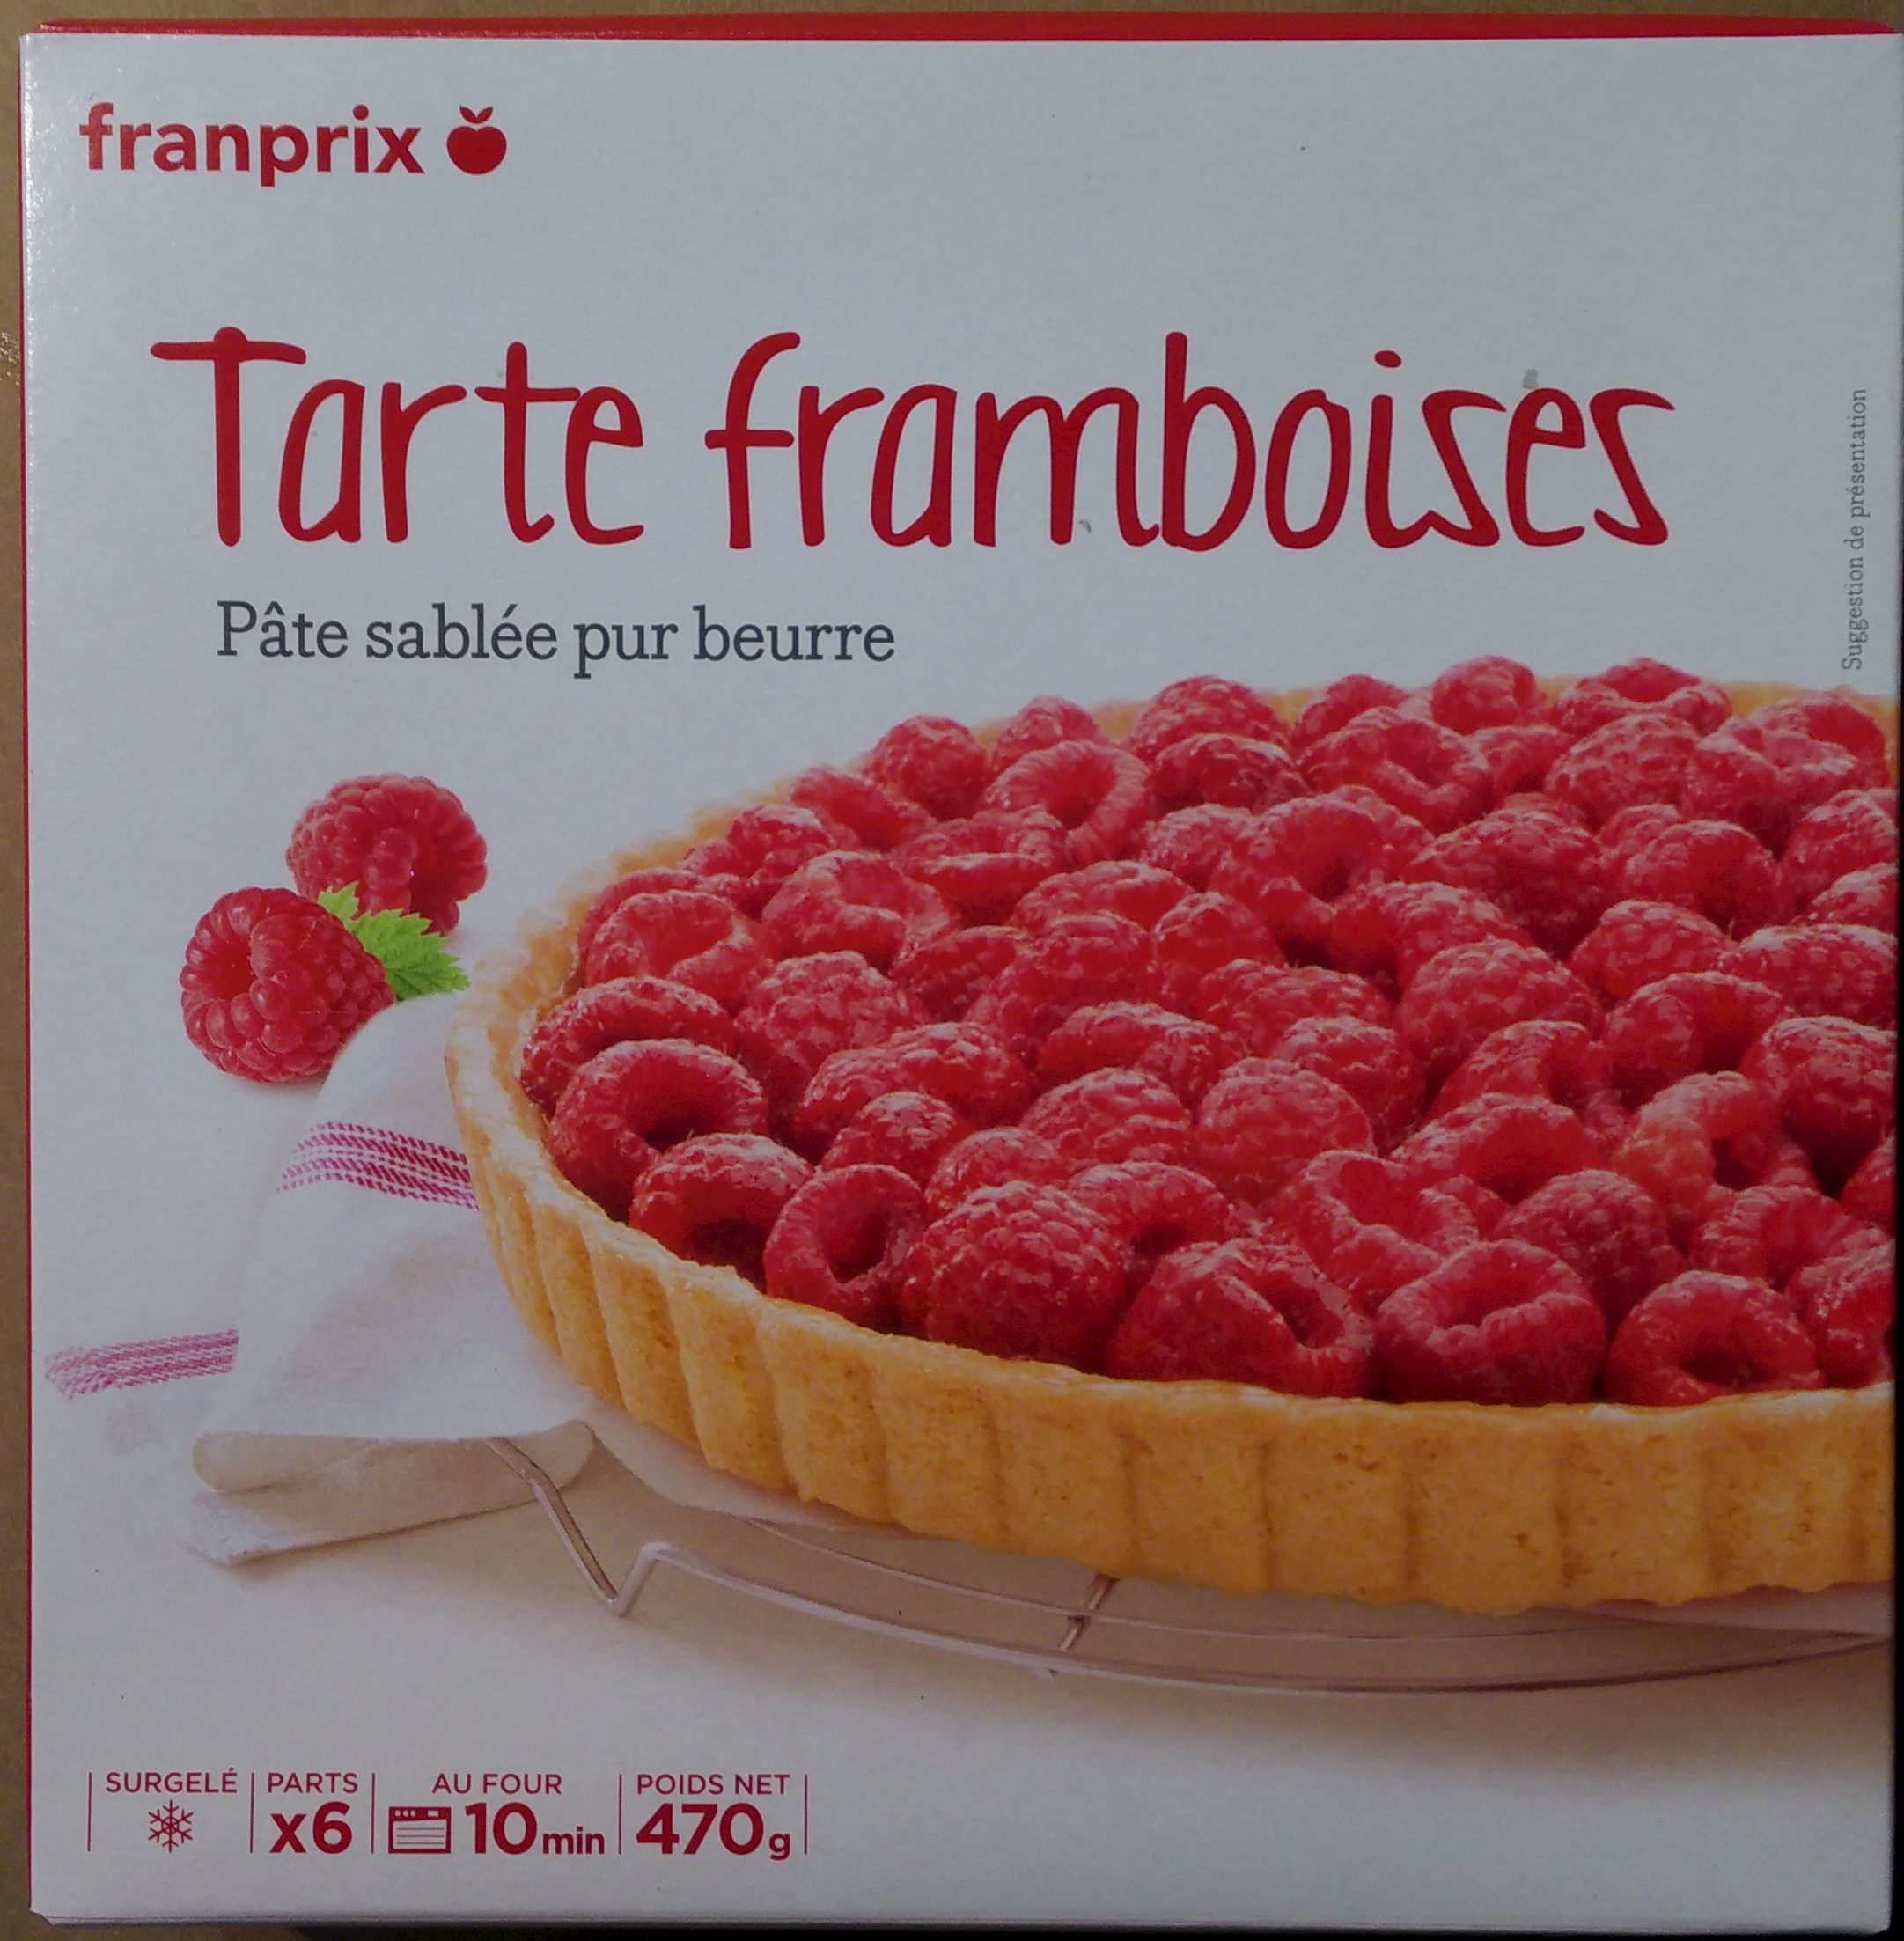 tarte framboises p te sabl e pur beurre franprix 470 g. Black Bedroom Furniture Sets. Home Design Ideas